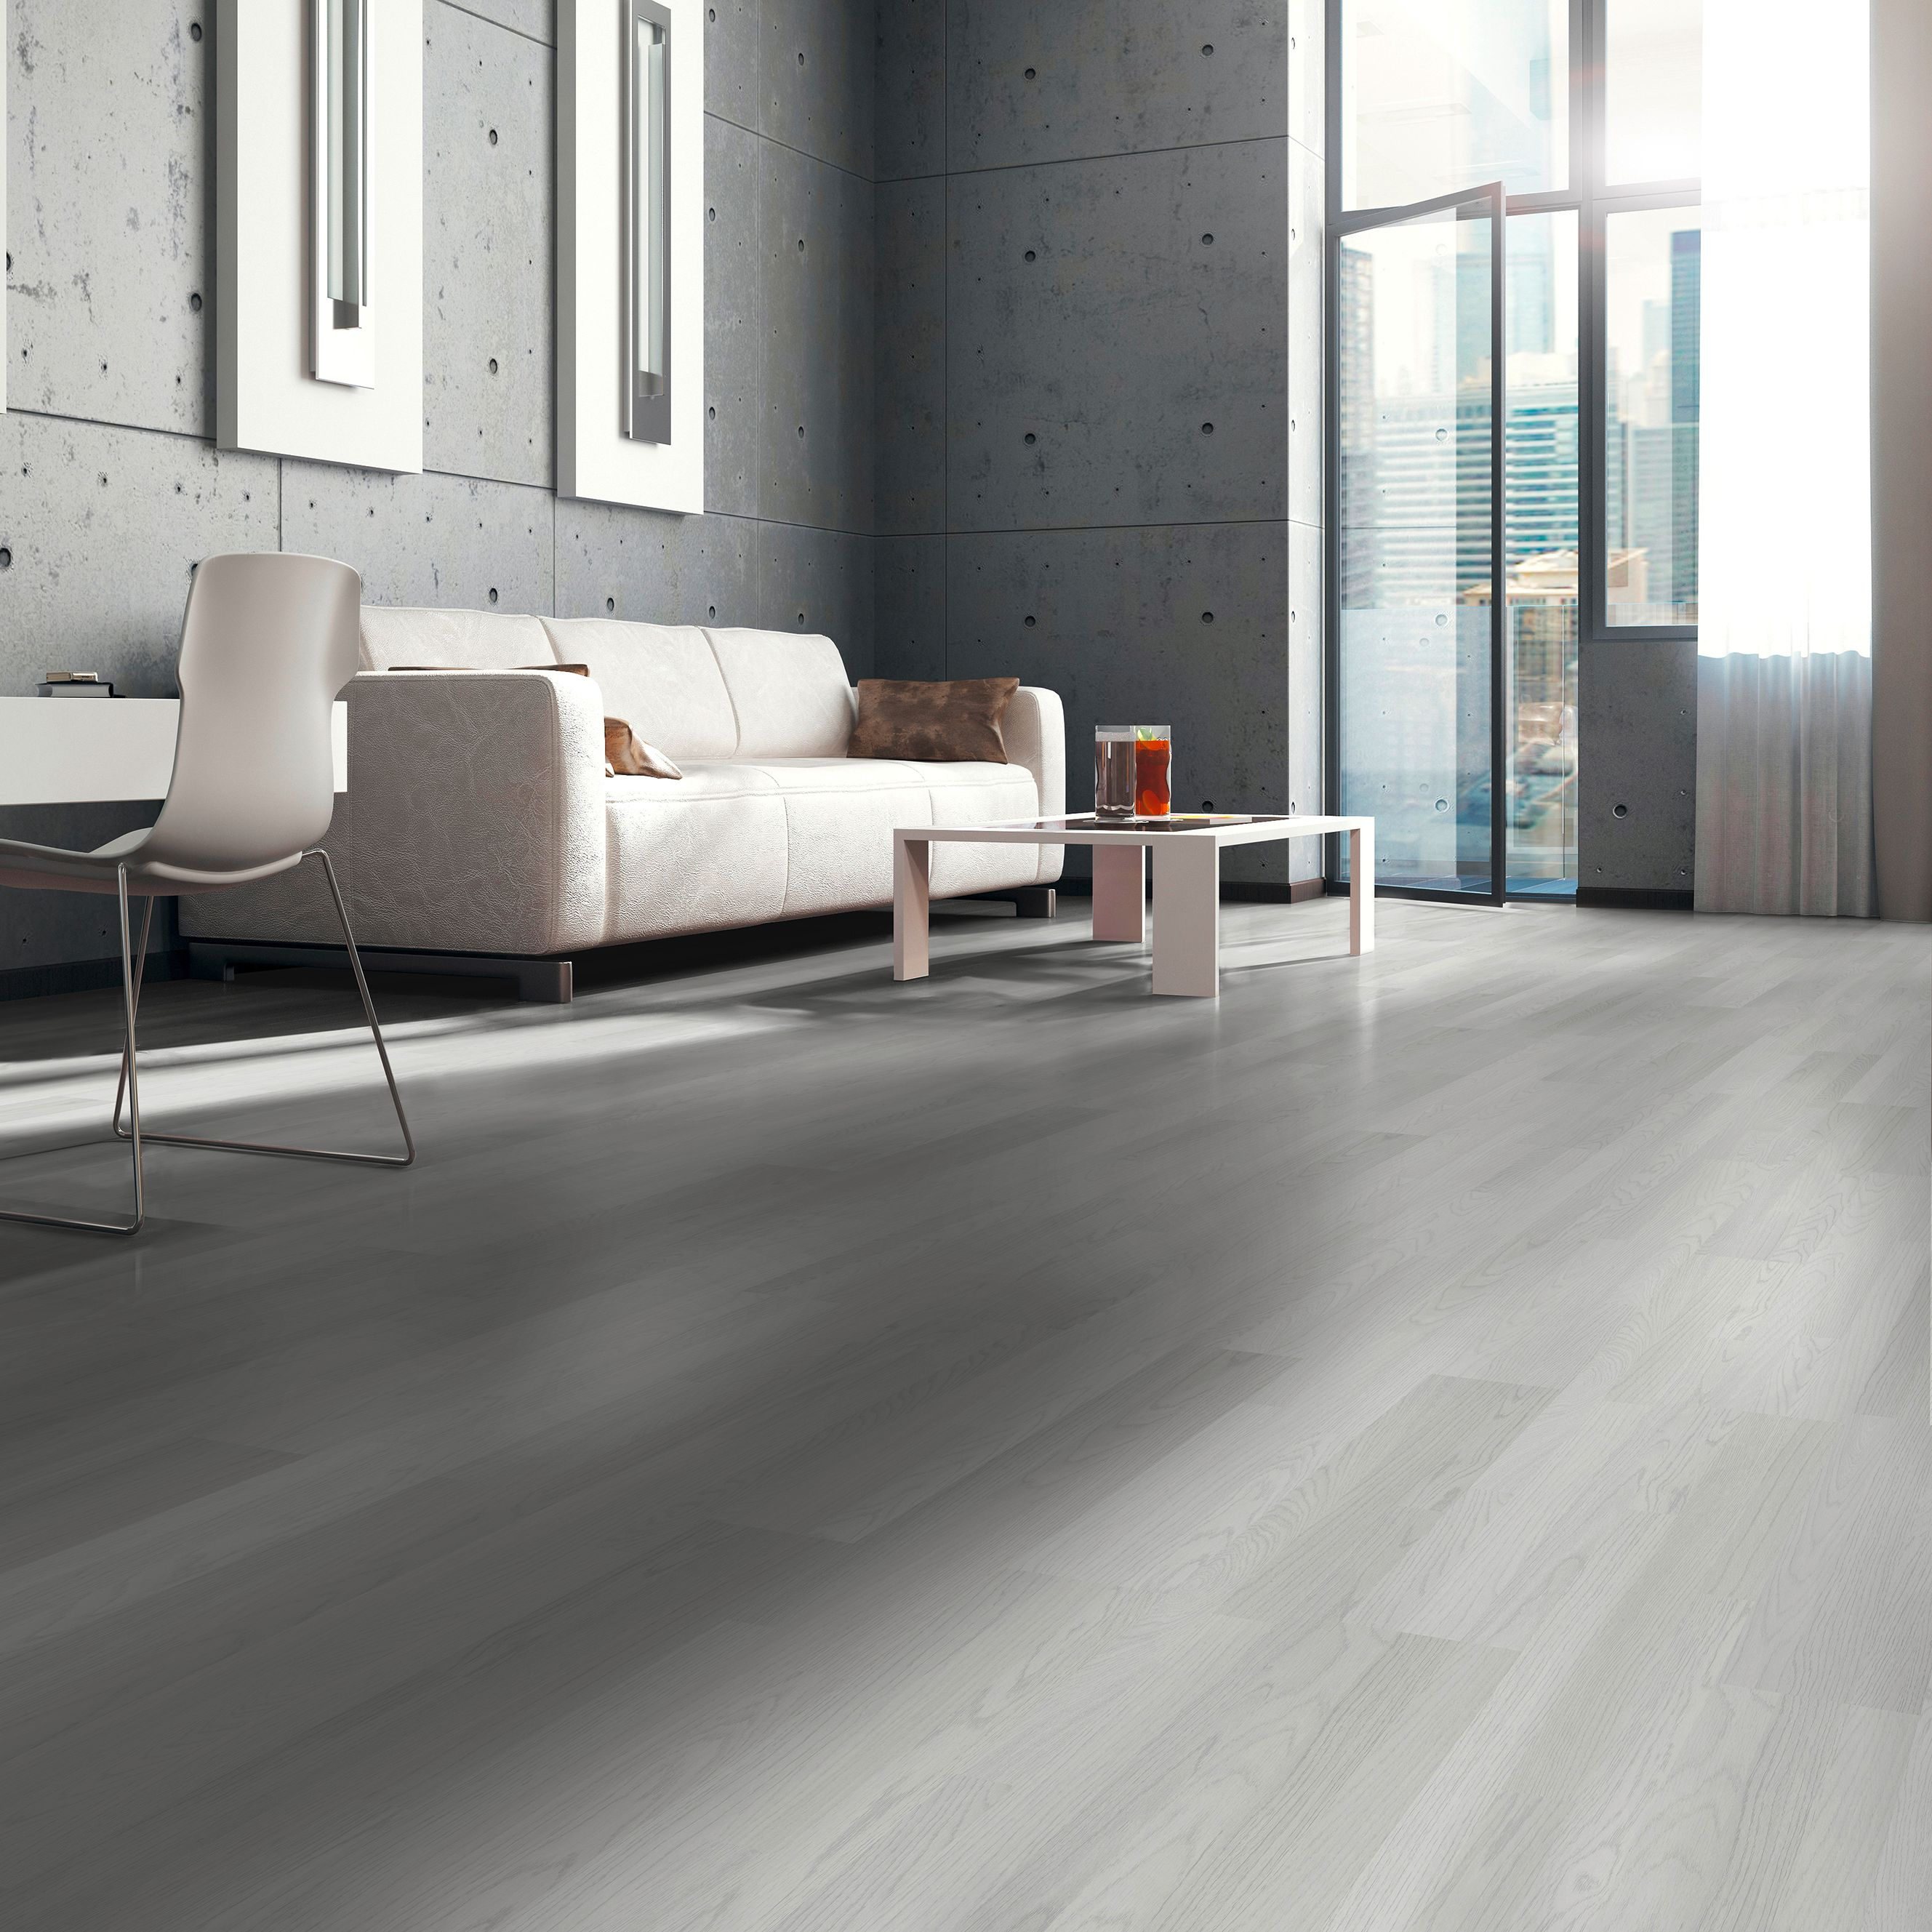 Whitewash Oak White Wood Effect Laminate Flooring 3 M² Pack